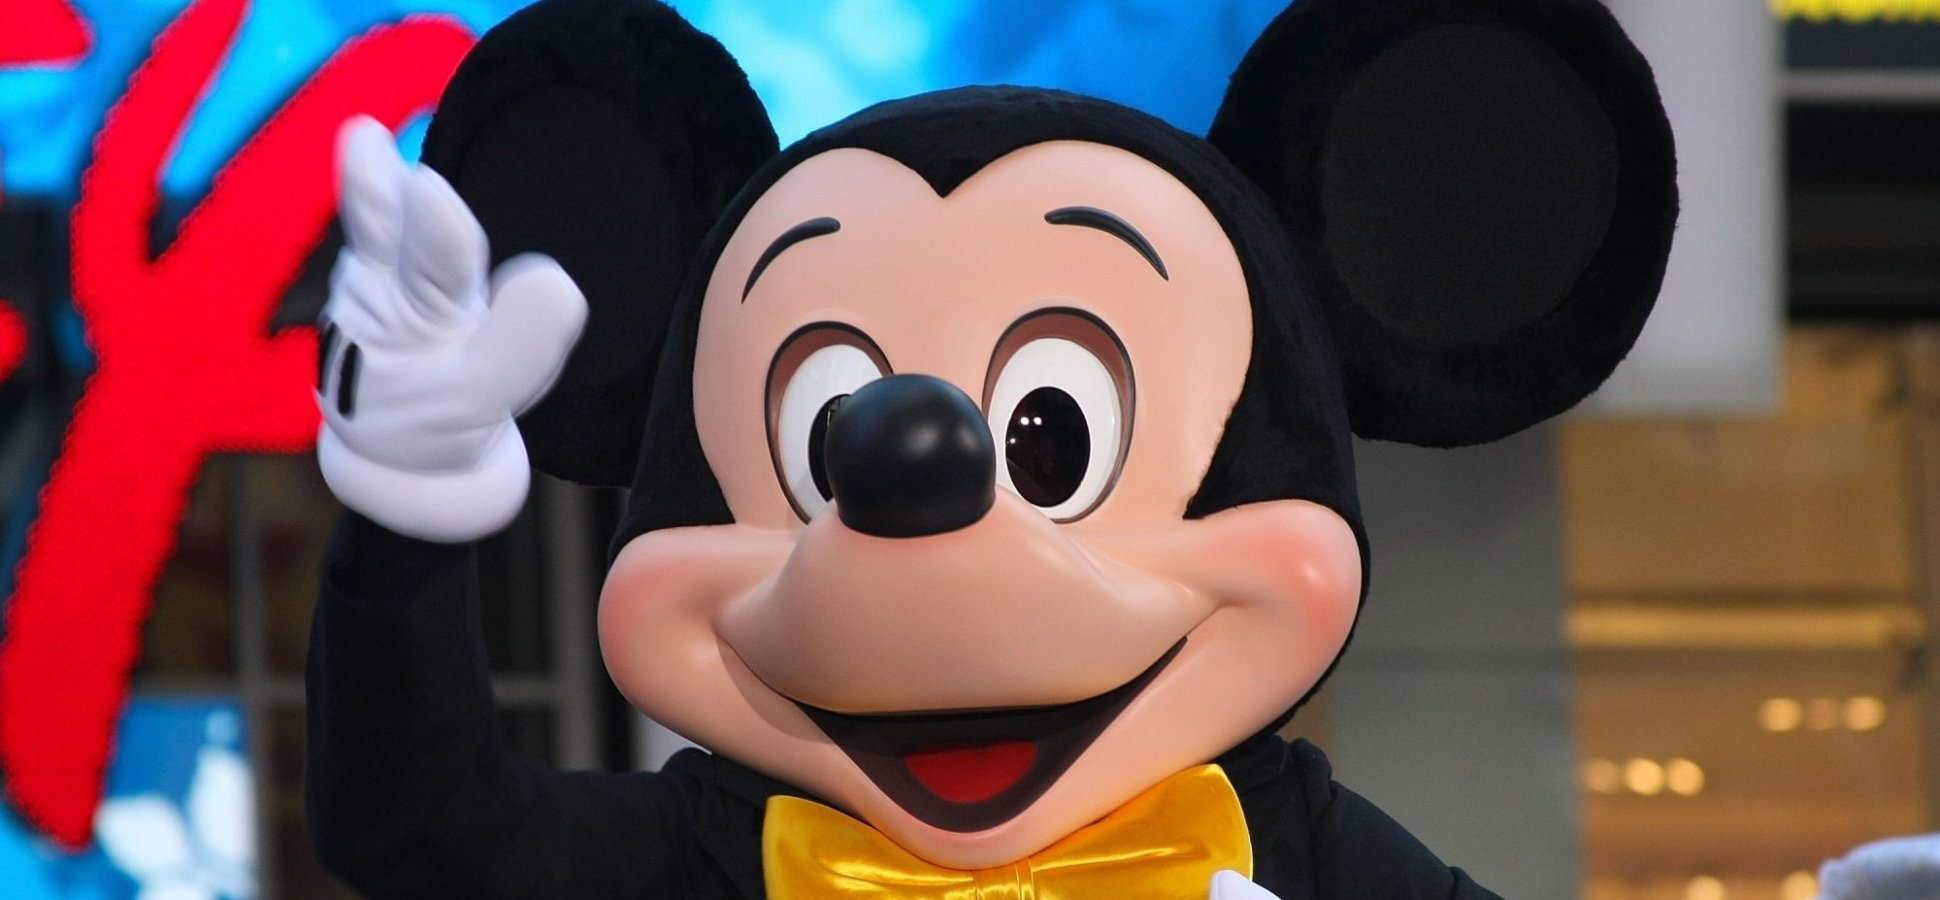 It's Mickey Mouse's 90th Birthday. Here Are 17 Wise Walt Disney Quotes to Inspire Your Success and Happiness